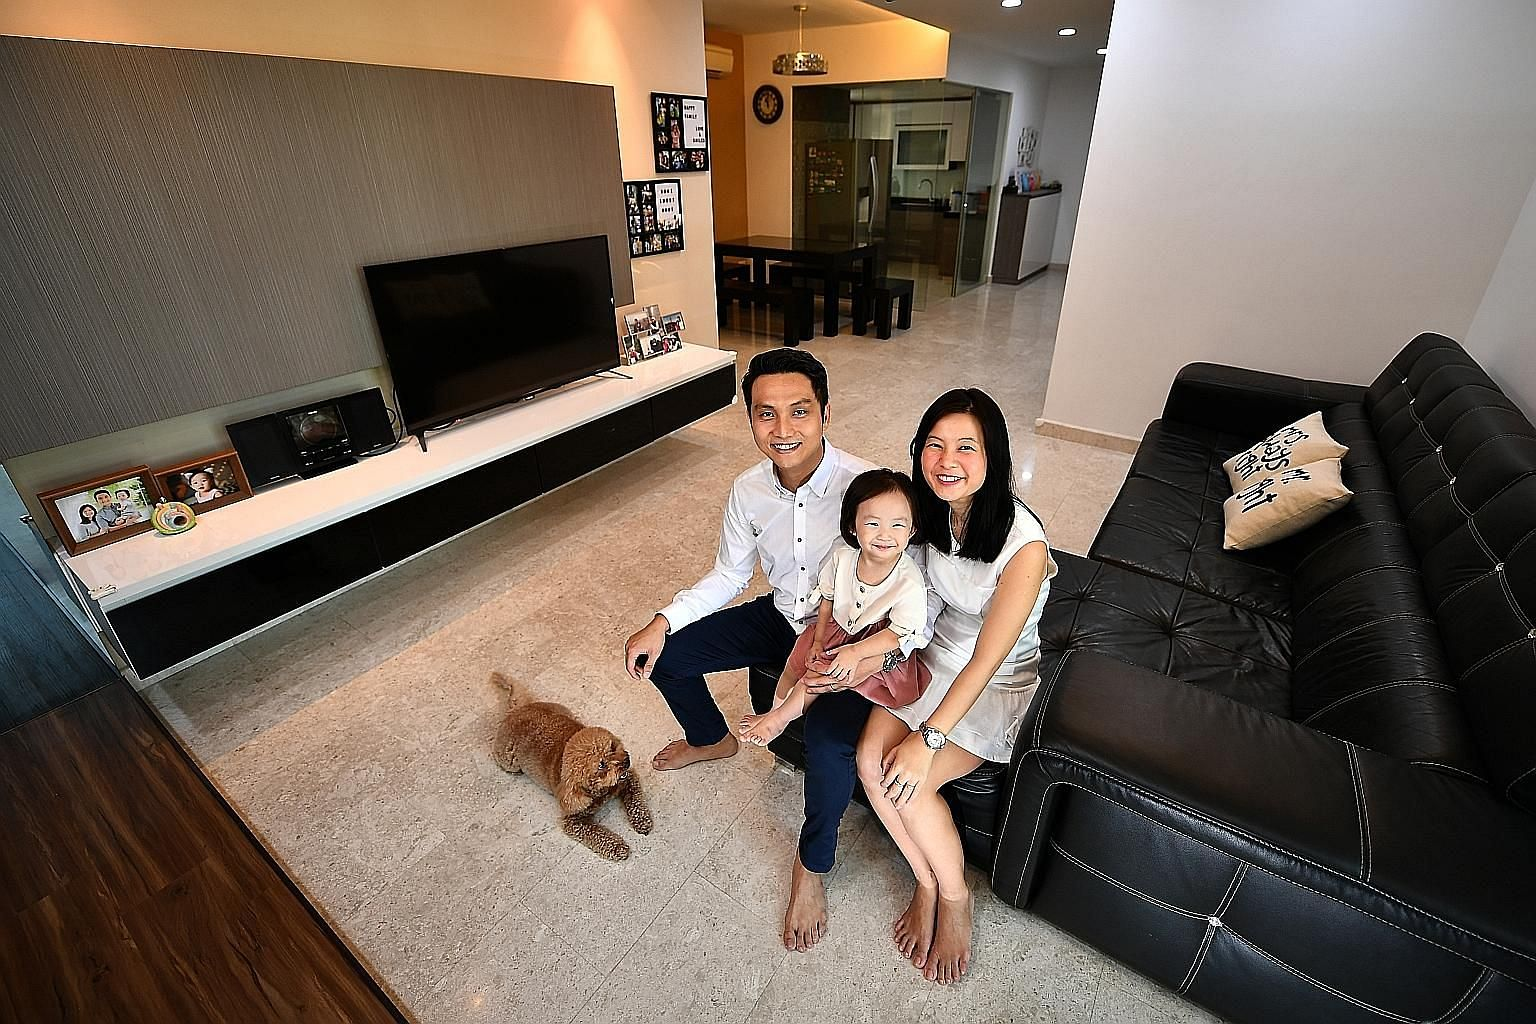 Mr Jason Tan, 38, senior associate executive director with OrangeTee & Tie, with his real estate agent wife Alice Loh, 37, and their daughter, Clariss Tan, two, in their 1,410 sq ft, three-bedroom condo in Modena in Simei.